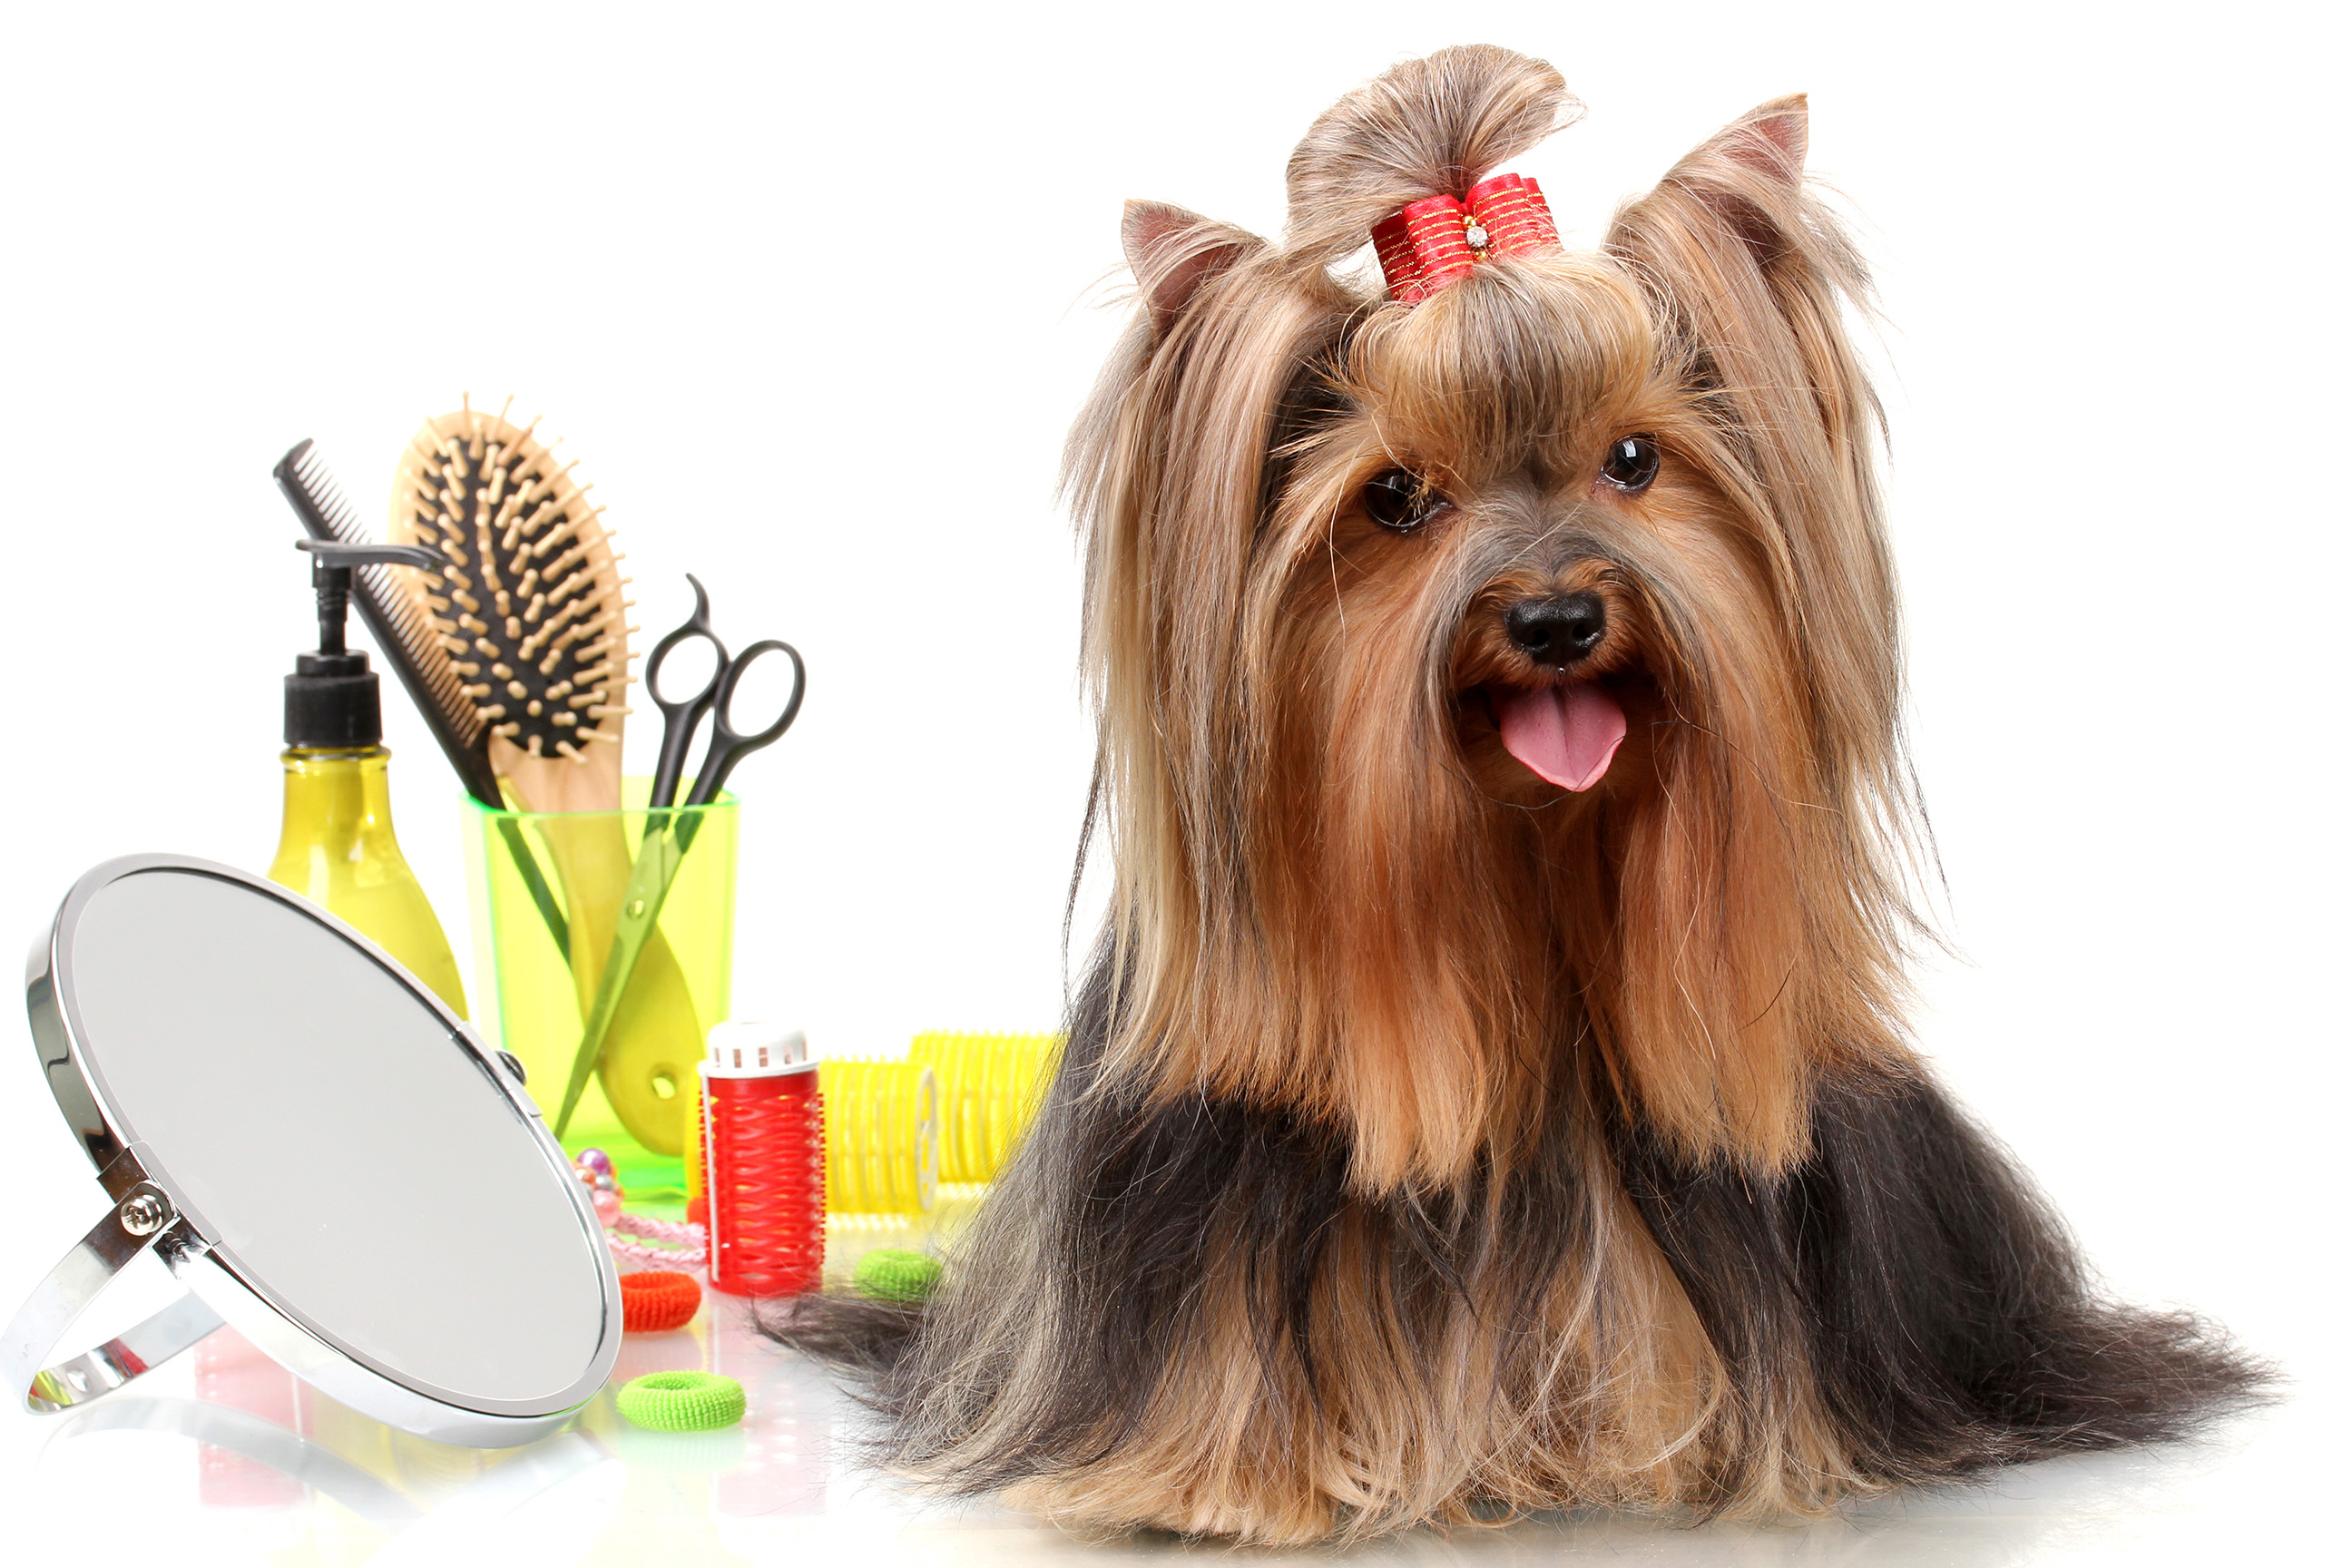 Beautiful yorkshire terrier with grooming items isolated on whit